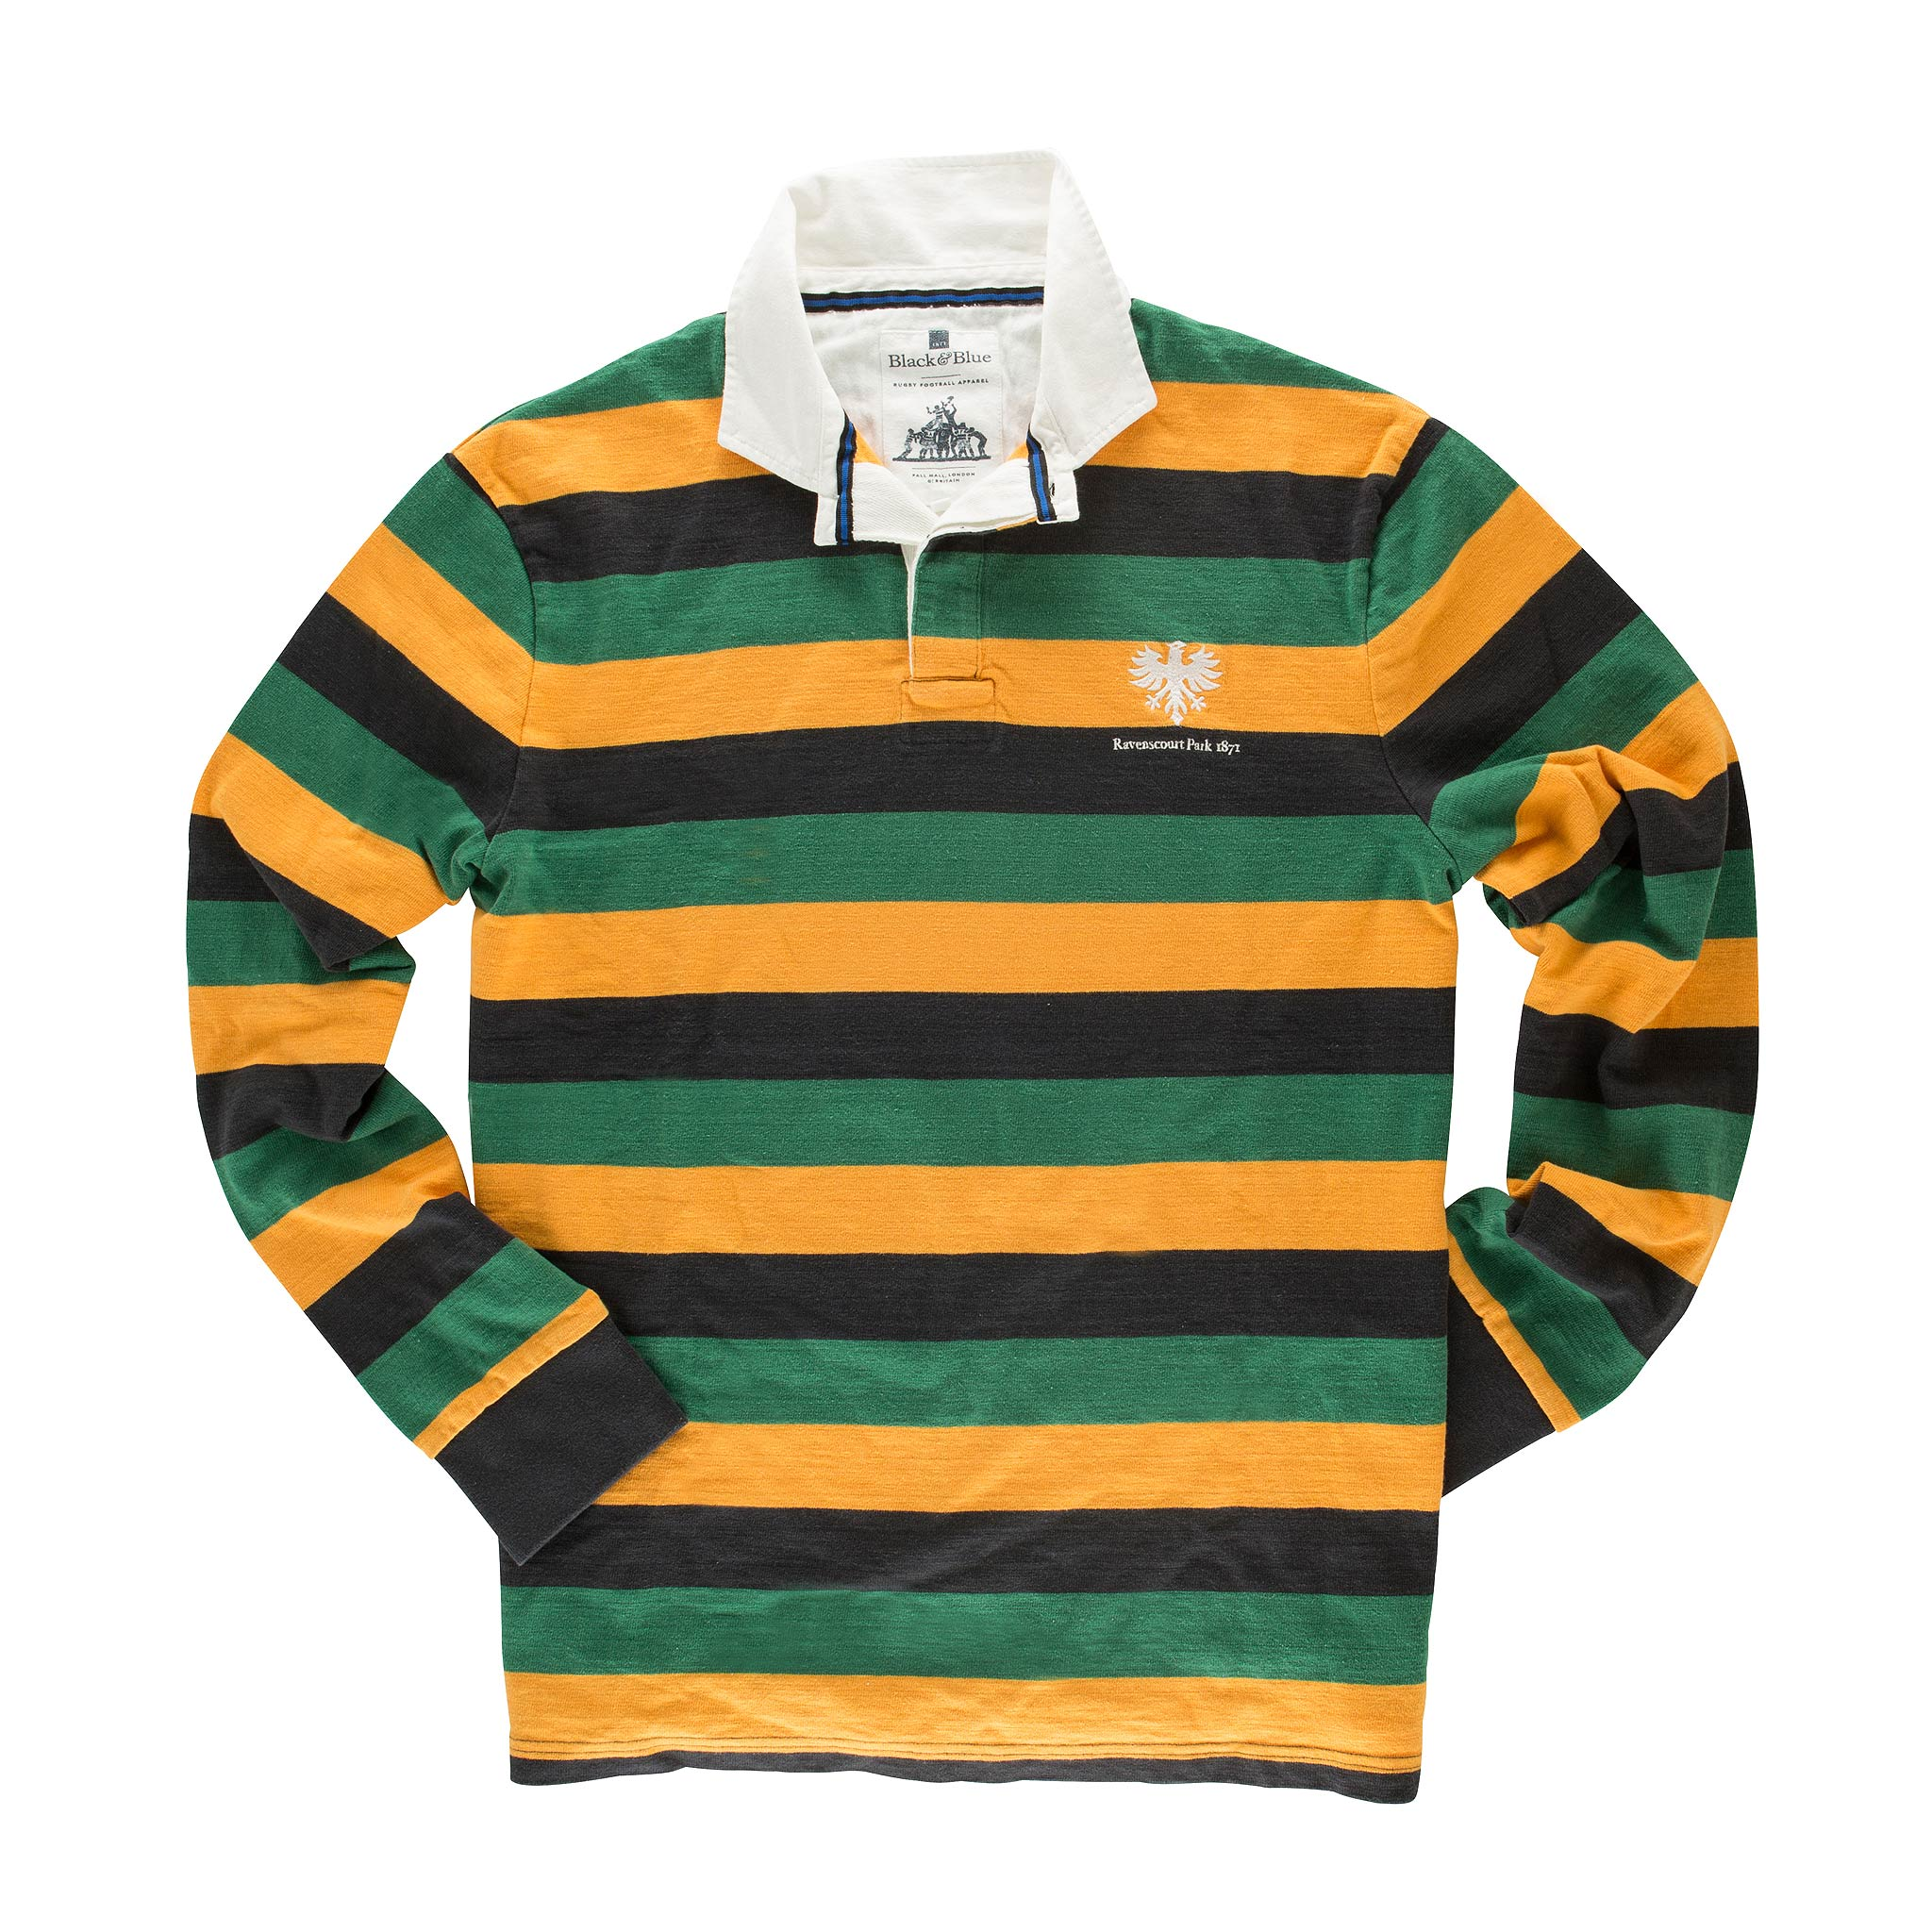 Black & Blue Ravenscourt Park Rugby Shirt for Men in Black/ Green/ Yellow